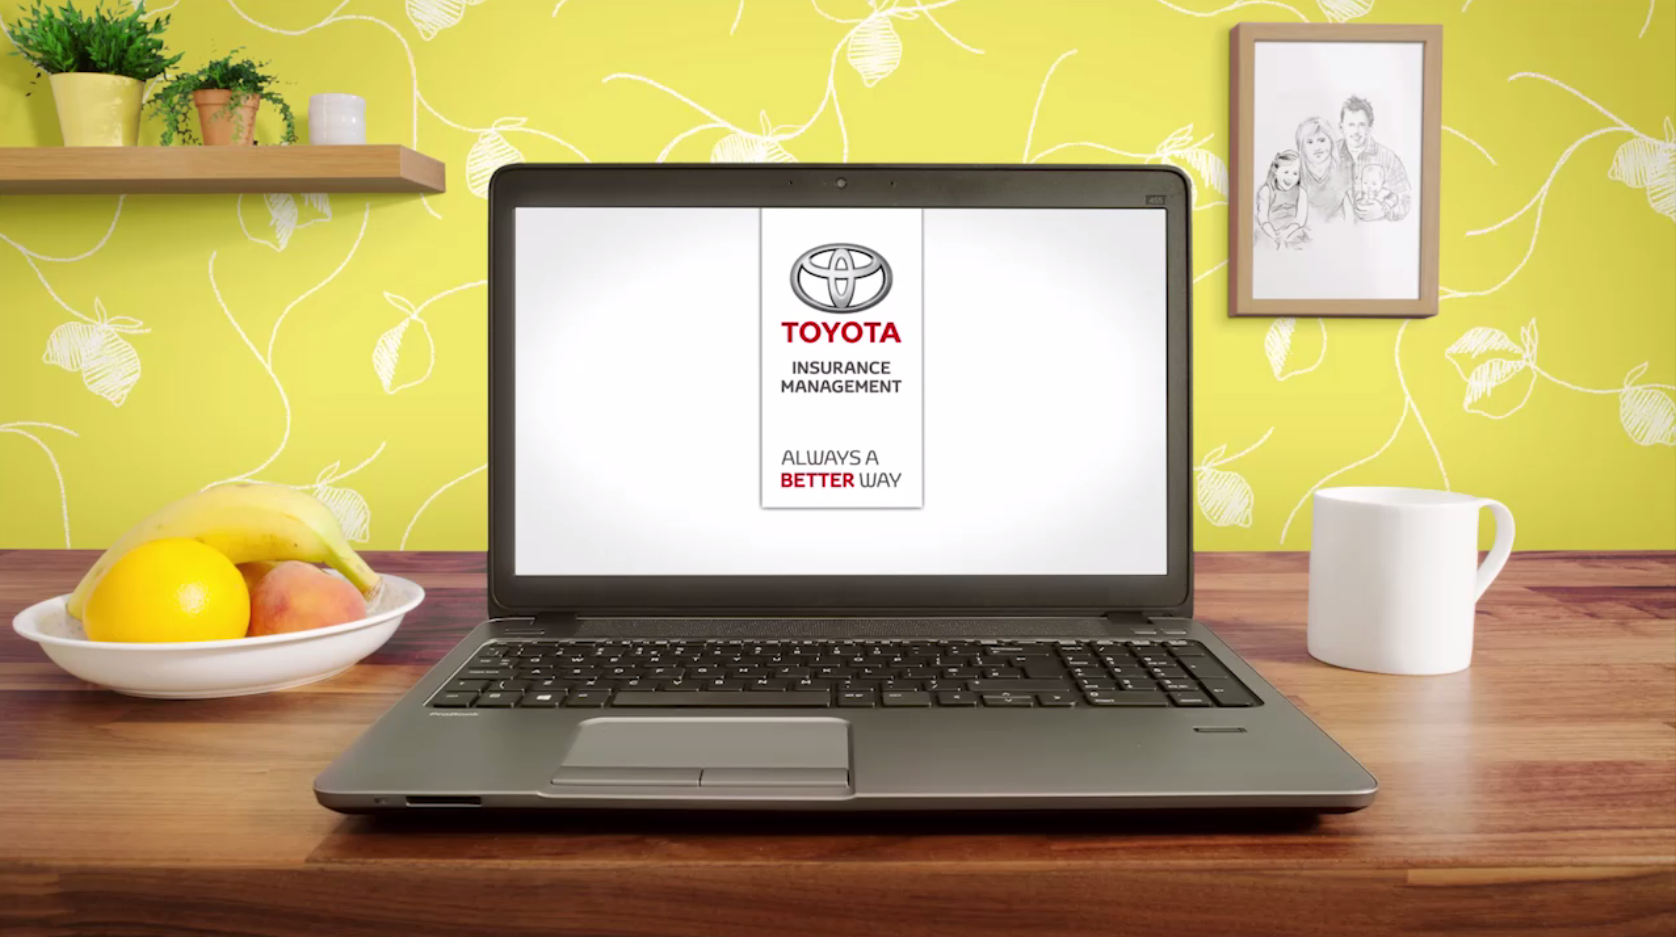 Introducing Toyota Insurance Management